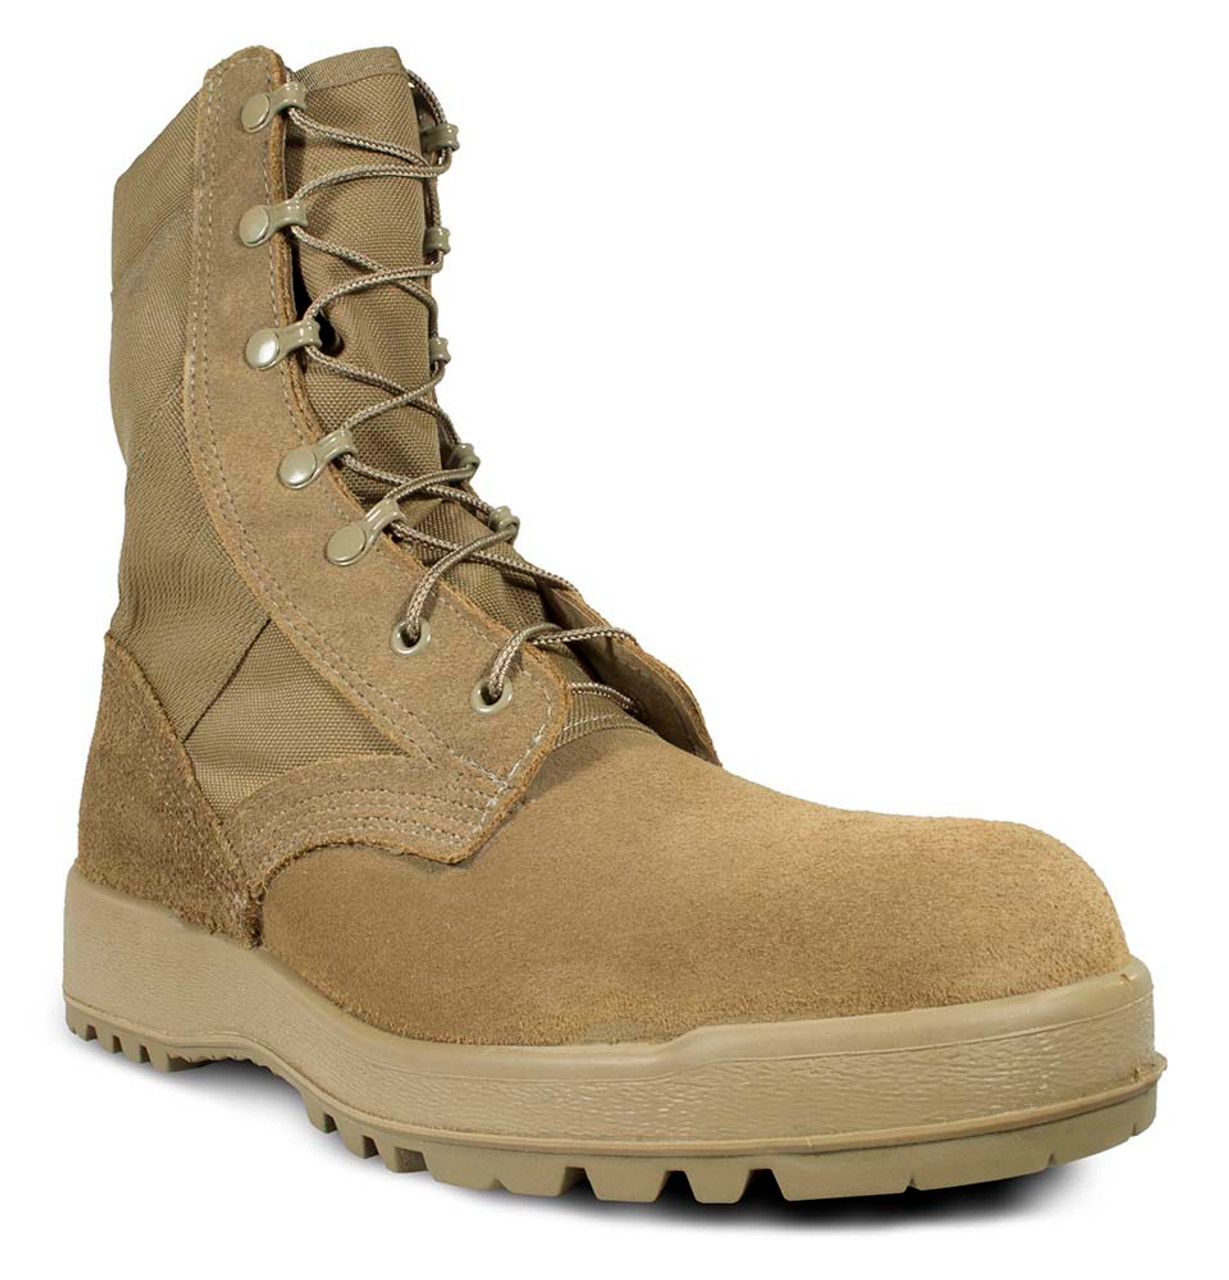 "McRae 8"" Mil-Spec Hot Weather Coyote Boot USA-Made with Vibram Sierra Outsole - Style #8189"